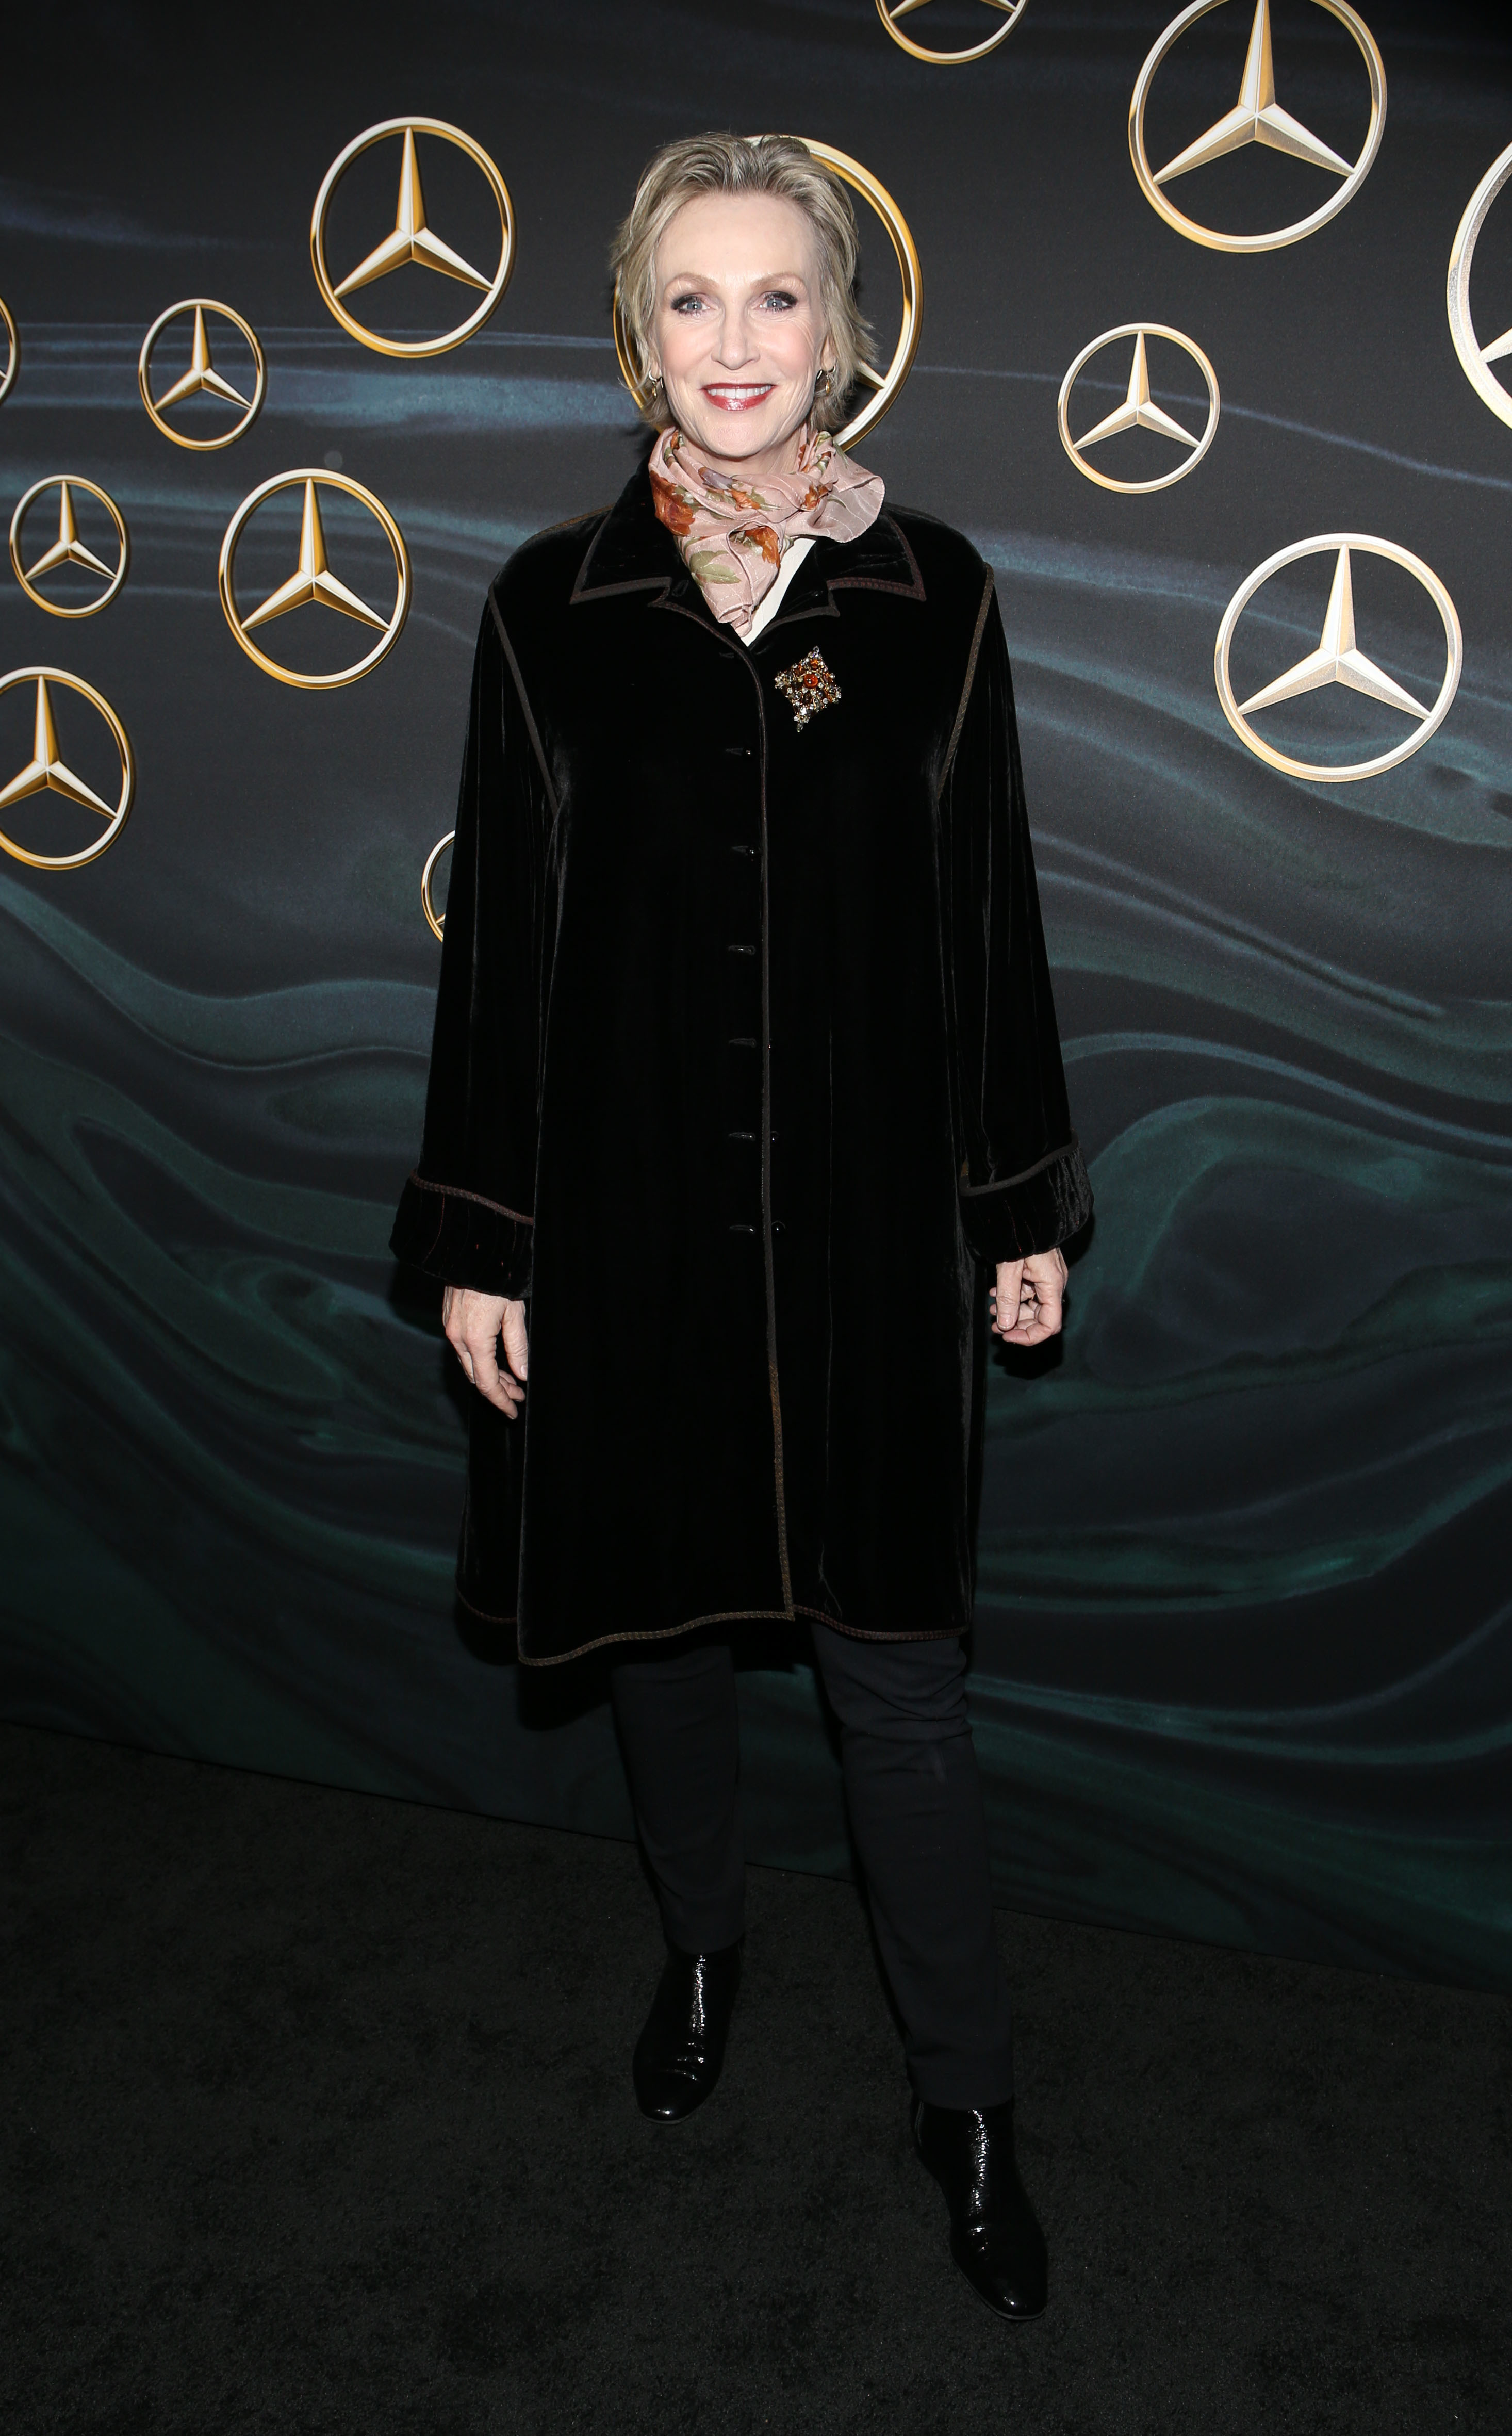 Jane Lynch attends the Mercedes Benz Academy Awards Viewing Party in Los Angeles on March 4, 2018.